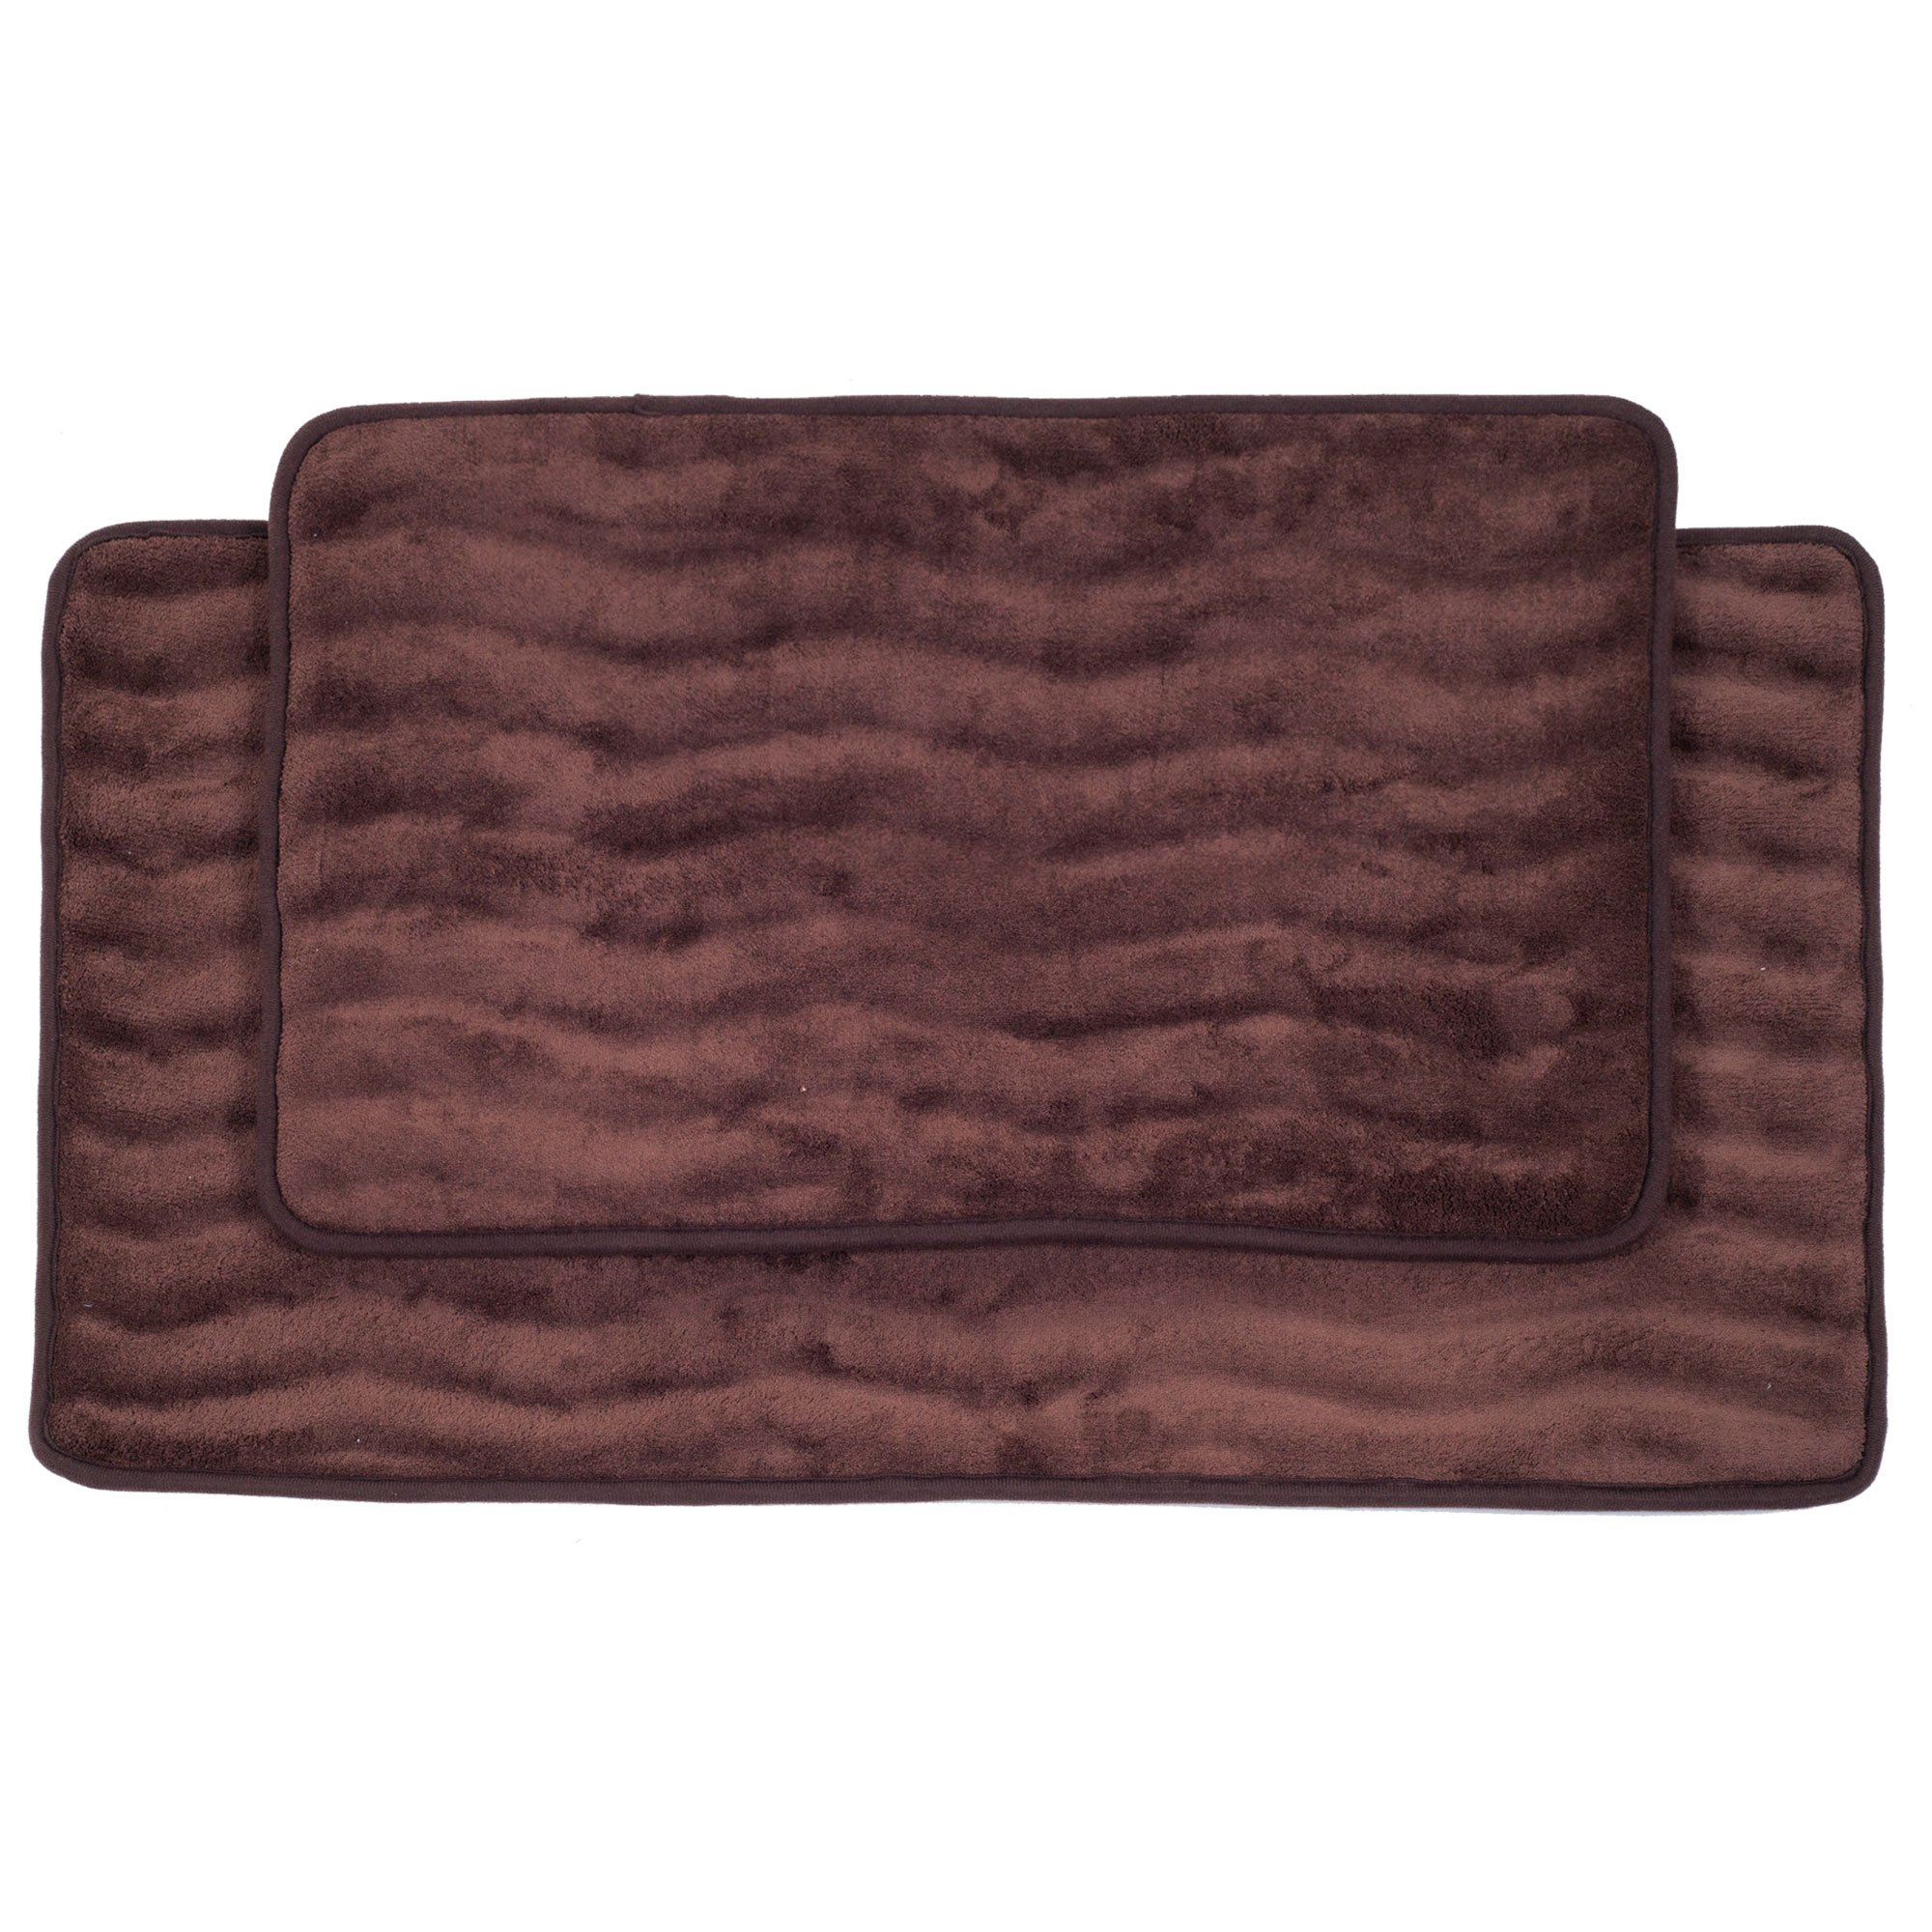 Lavish Home 2-Piece Memory Foam Bath Mat Set, Chocolate